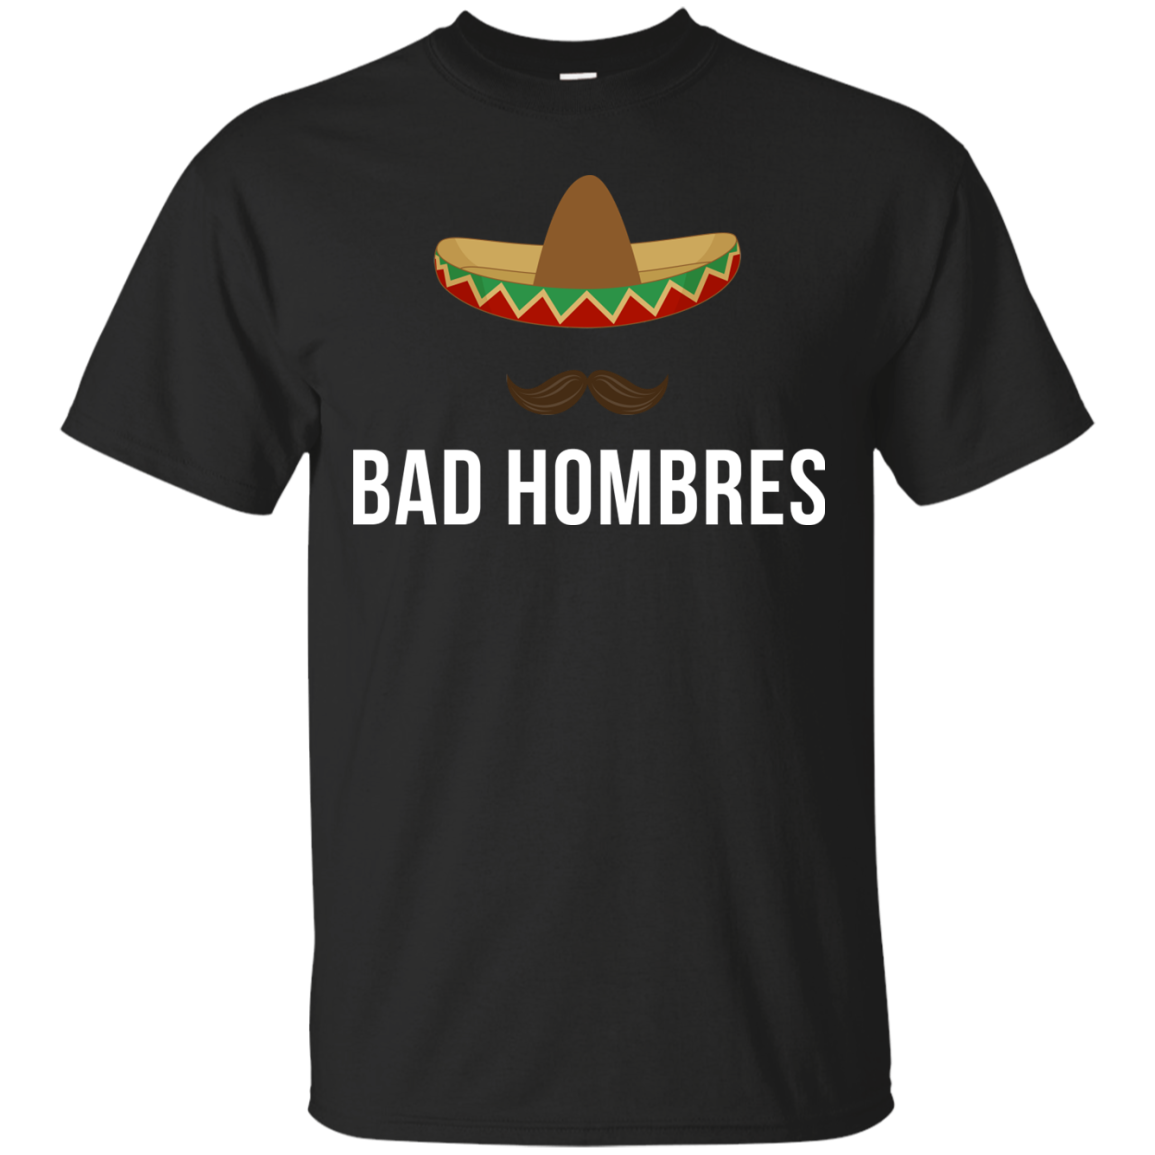 Bad Hombres t shirt Trump Clinton Debate